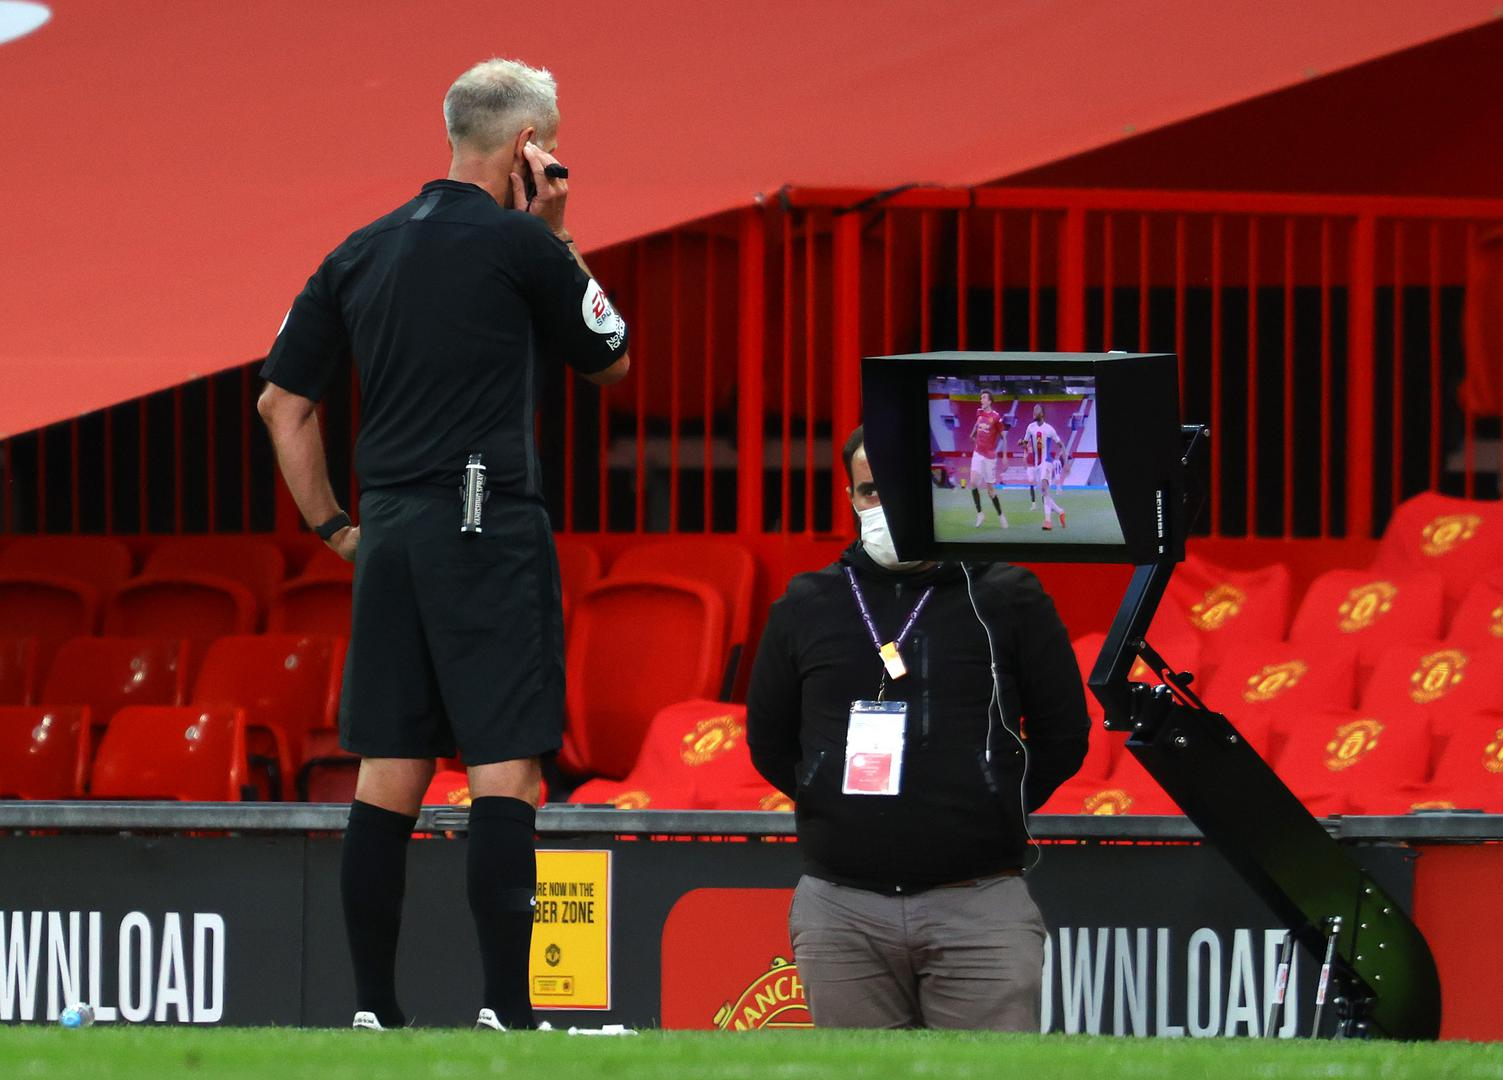 Martin Atkinson checking the VAR screen,